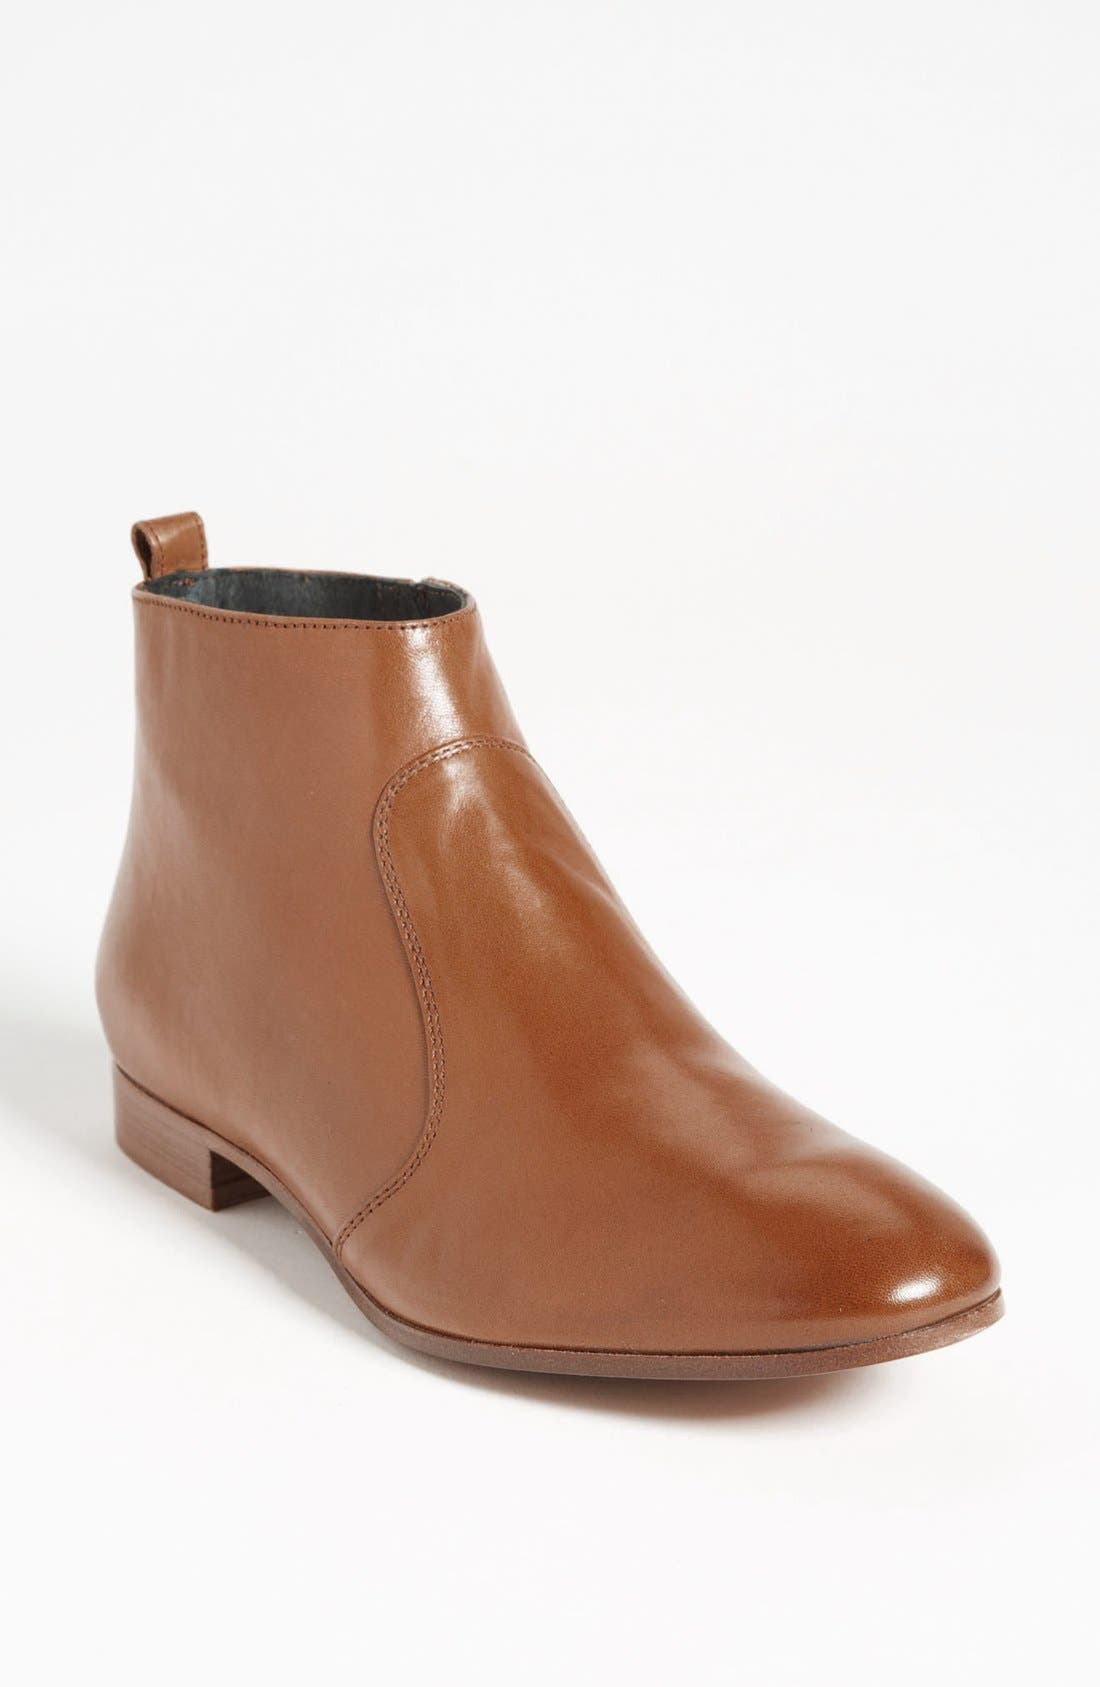 Alternate Image 1 Selected - Alberto Fermani 'Nolita' Bootie (Online Only)